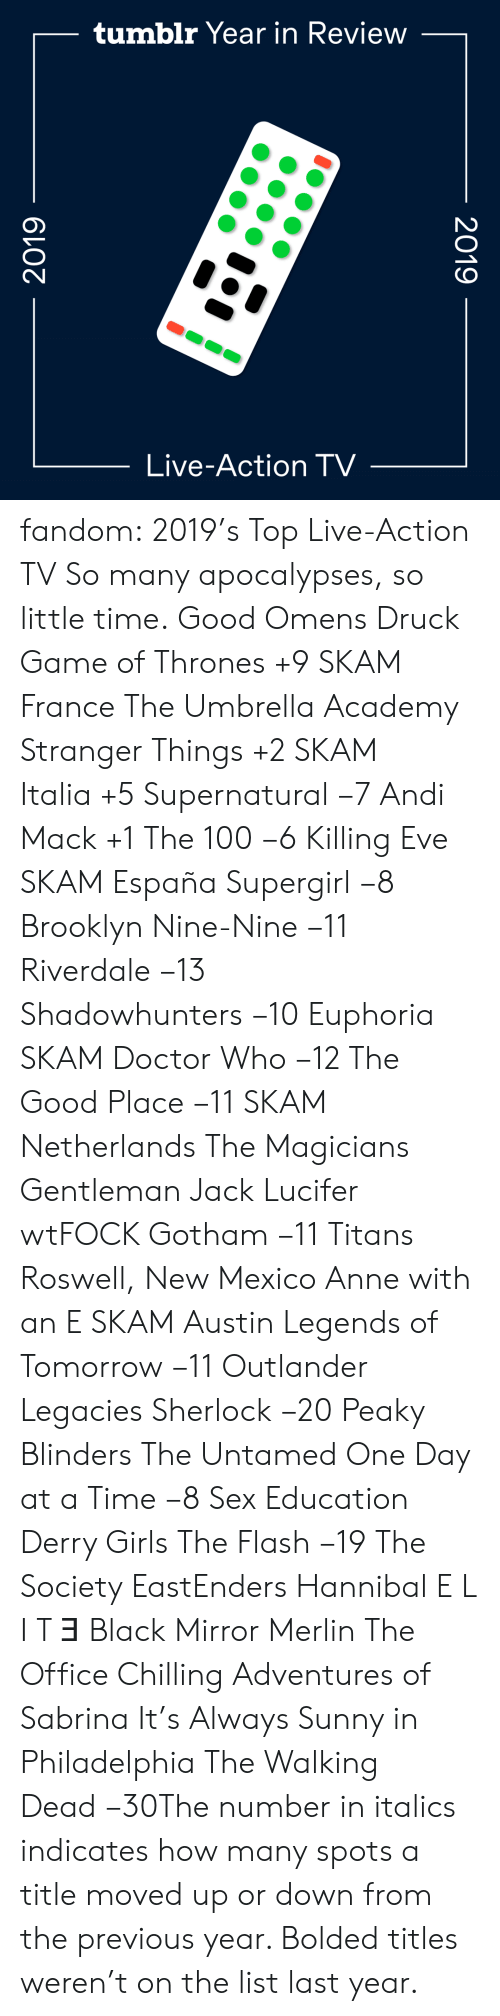 The Office: tumblr Year in Review  Live-Action TV-  2019  2019 fandom:  2019's Top Live-Action TV  So many apocalypses, so little time.  Good Omens  Druck  Game of Thrones +9  SKAM France  The Umbrella Academy  Stranger Things +2  SKAM Italia +5  Supernatural −7  Andi Mack +1  The 100 −6  Killing Eve   SKAM España  Supergirl −8  Brooklyn Nine-Nine −11  Riverdale −13  Shadowhunters −10  Euphoria  SKAM  Doctor Who −12  The Good Place −11  SKAM Netherlands  The Magicians  Gentleman Jack  Lucifer  wtFOCK  Gotham −11  Titans  Roswell, New Mexico  Anne with an E  SKAM Austin  Legends of Tomorrow −11  Outlander  Legacies  Sherlock −20  Peaky Blinders  The Untamed  One Day at a Time −8  Sex Education  Derry Girls  The Flash −19  The Society  EastEnders  Hannibal  E L I T Ǝ  Black Mirror  Merlin  The Office  Chilling Adventures of Sabrina  It's Always Sunny in Philadelphia The Walking Dead −30The number in italics indicates how many spots a title moved up or down from the previous year. Bolded titles weren't on the list last year.